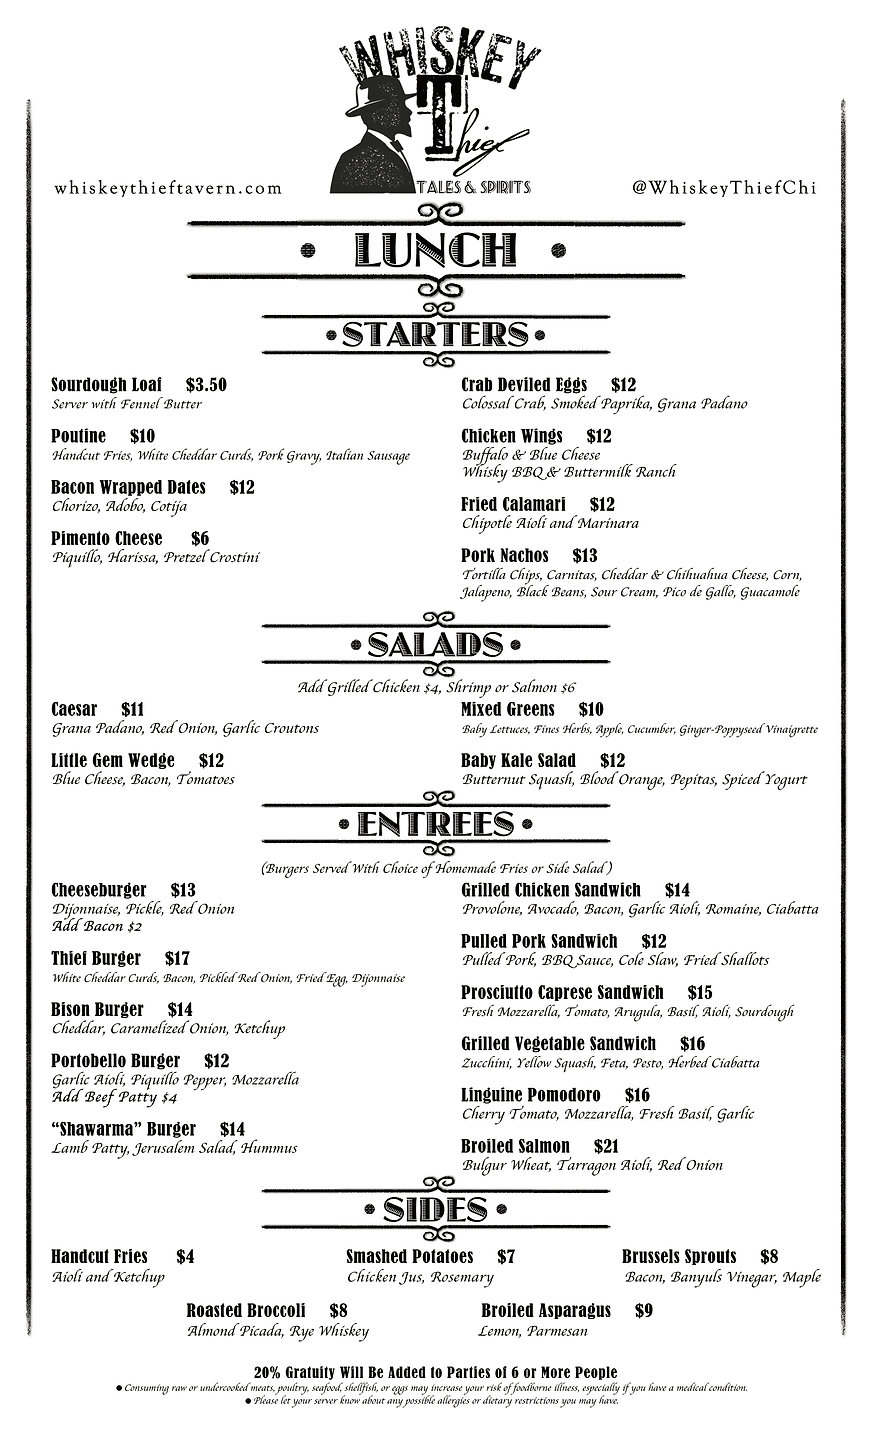 whiskey thief tavern evanston menu